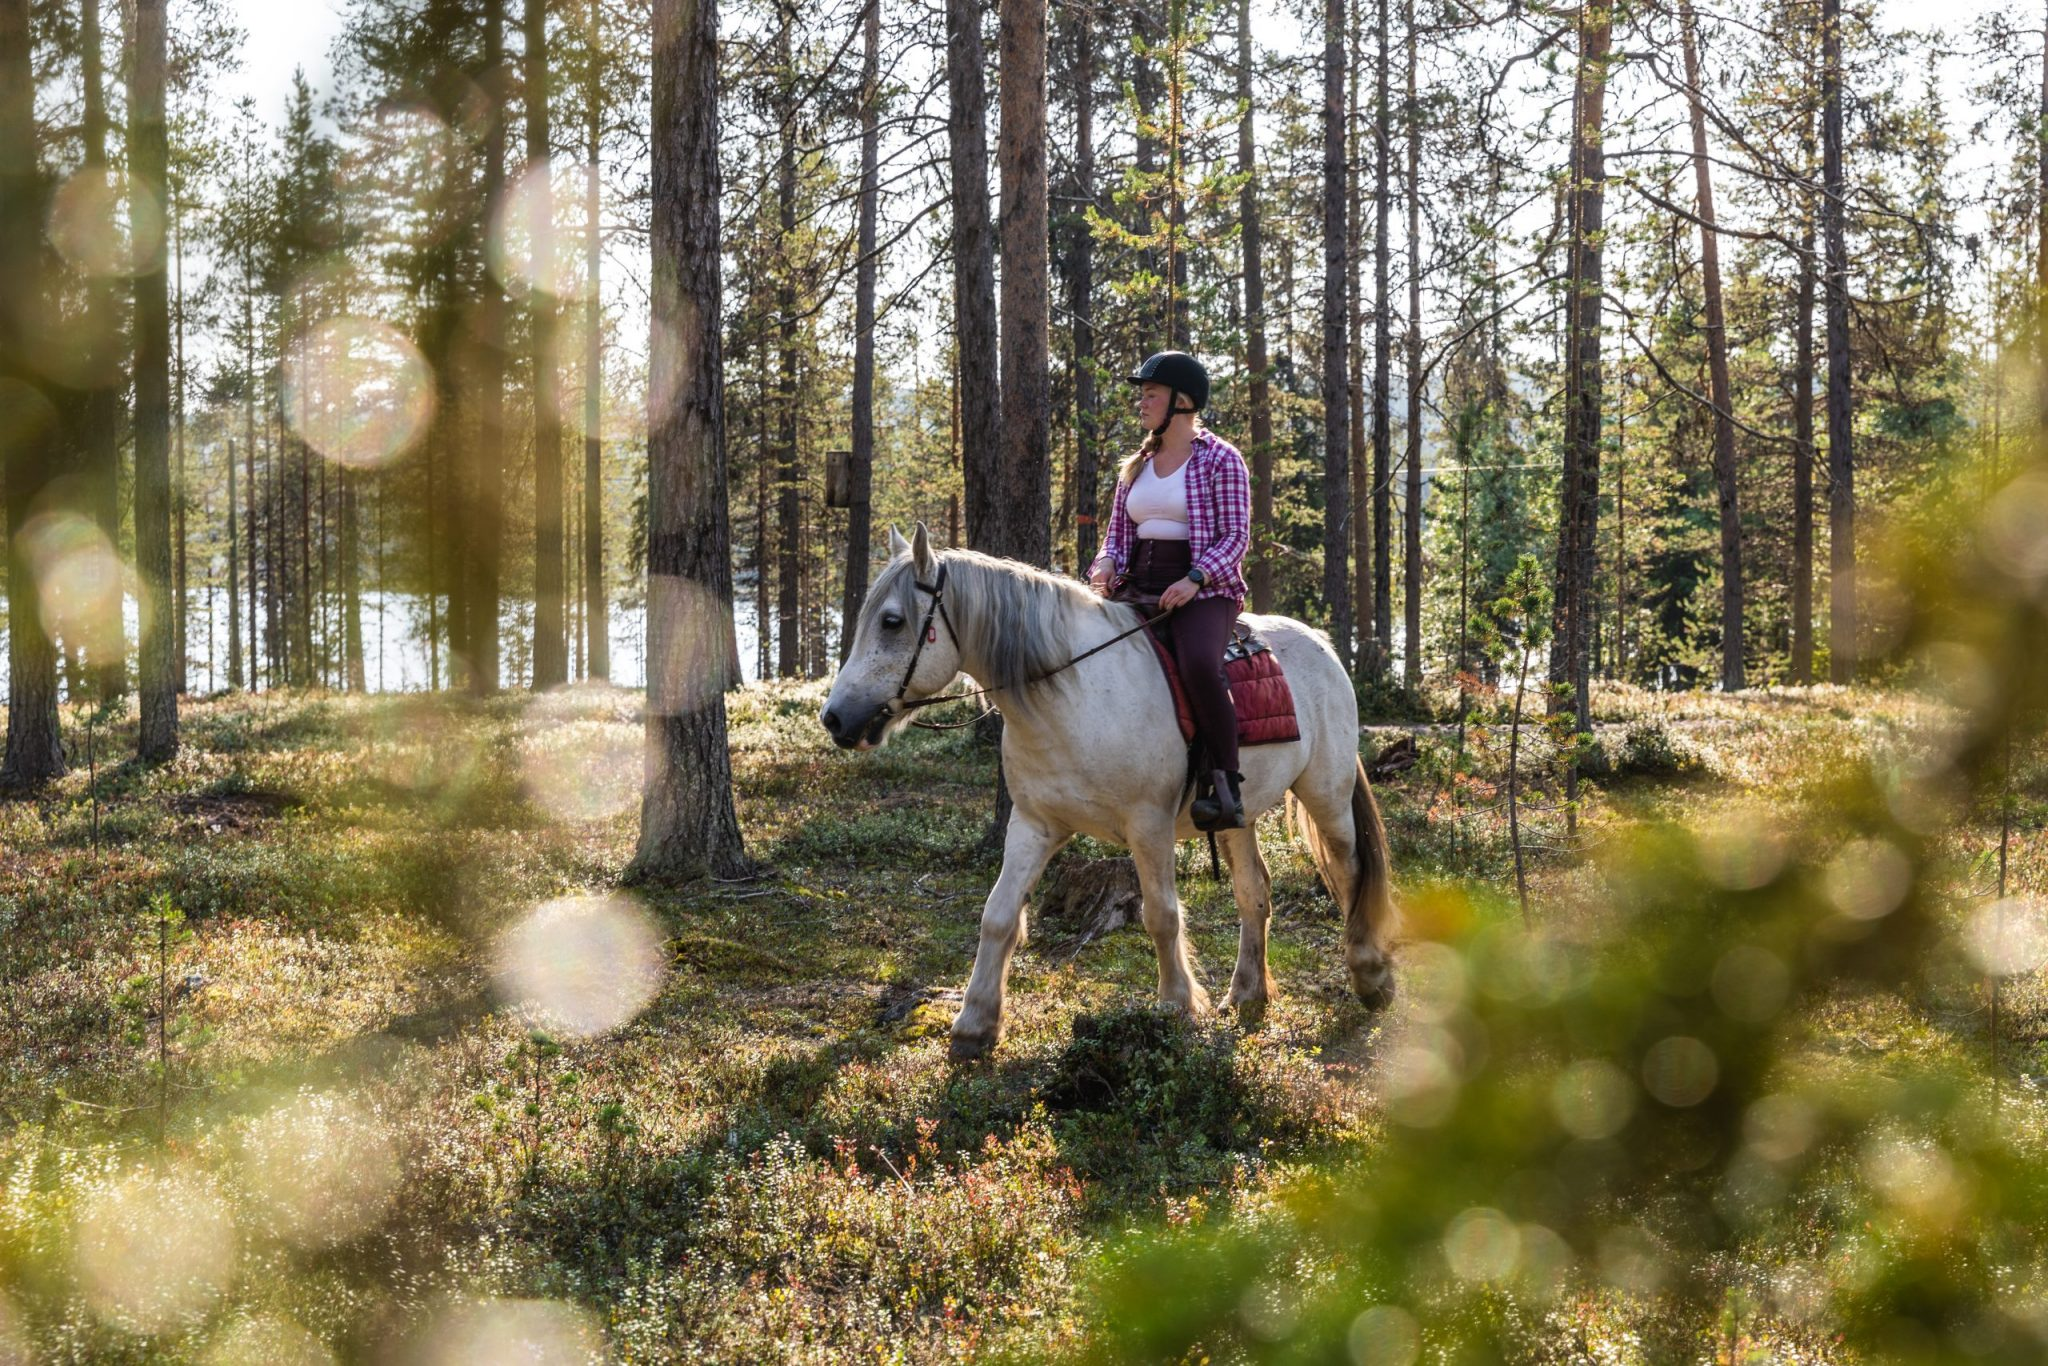 Horseback riding DiscoverMuonio Activities Horses Photo by House of Lapland Terhi Tuovinen